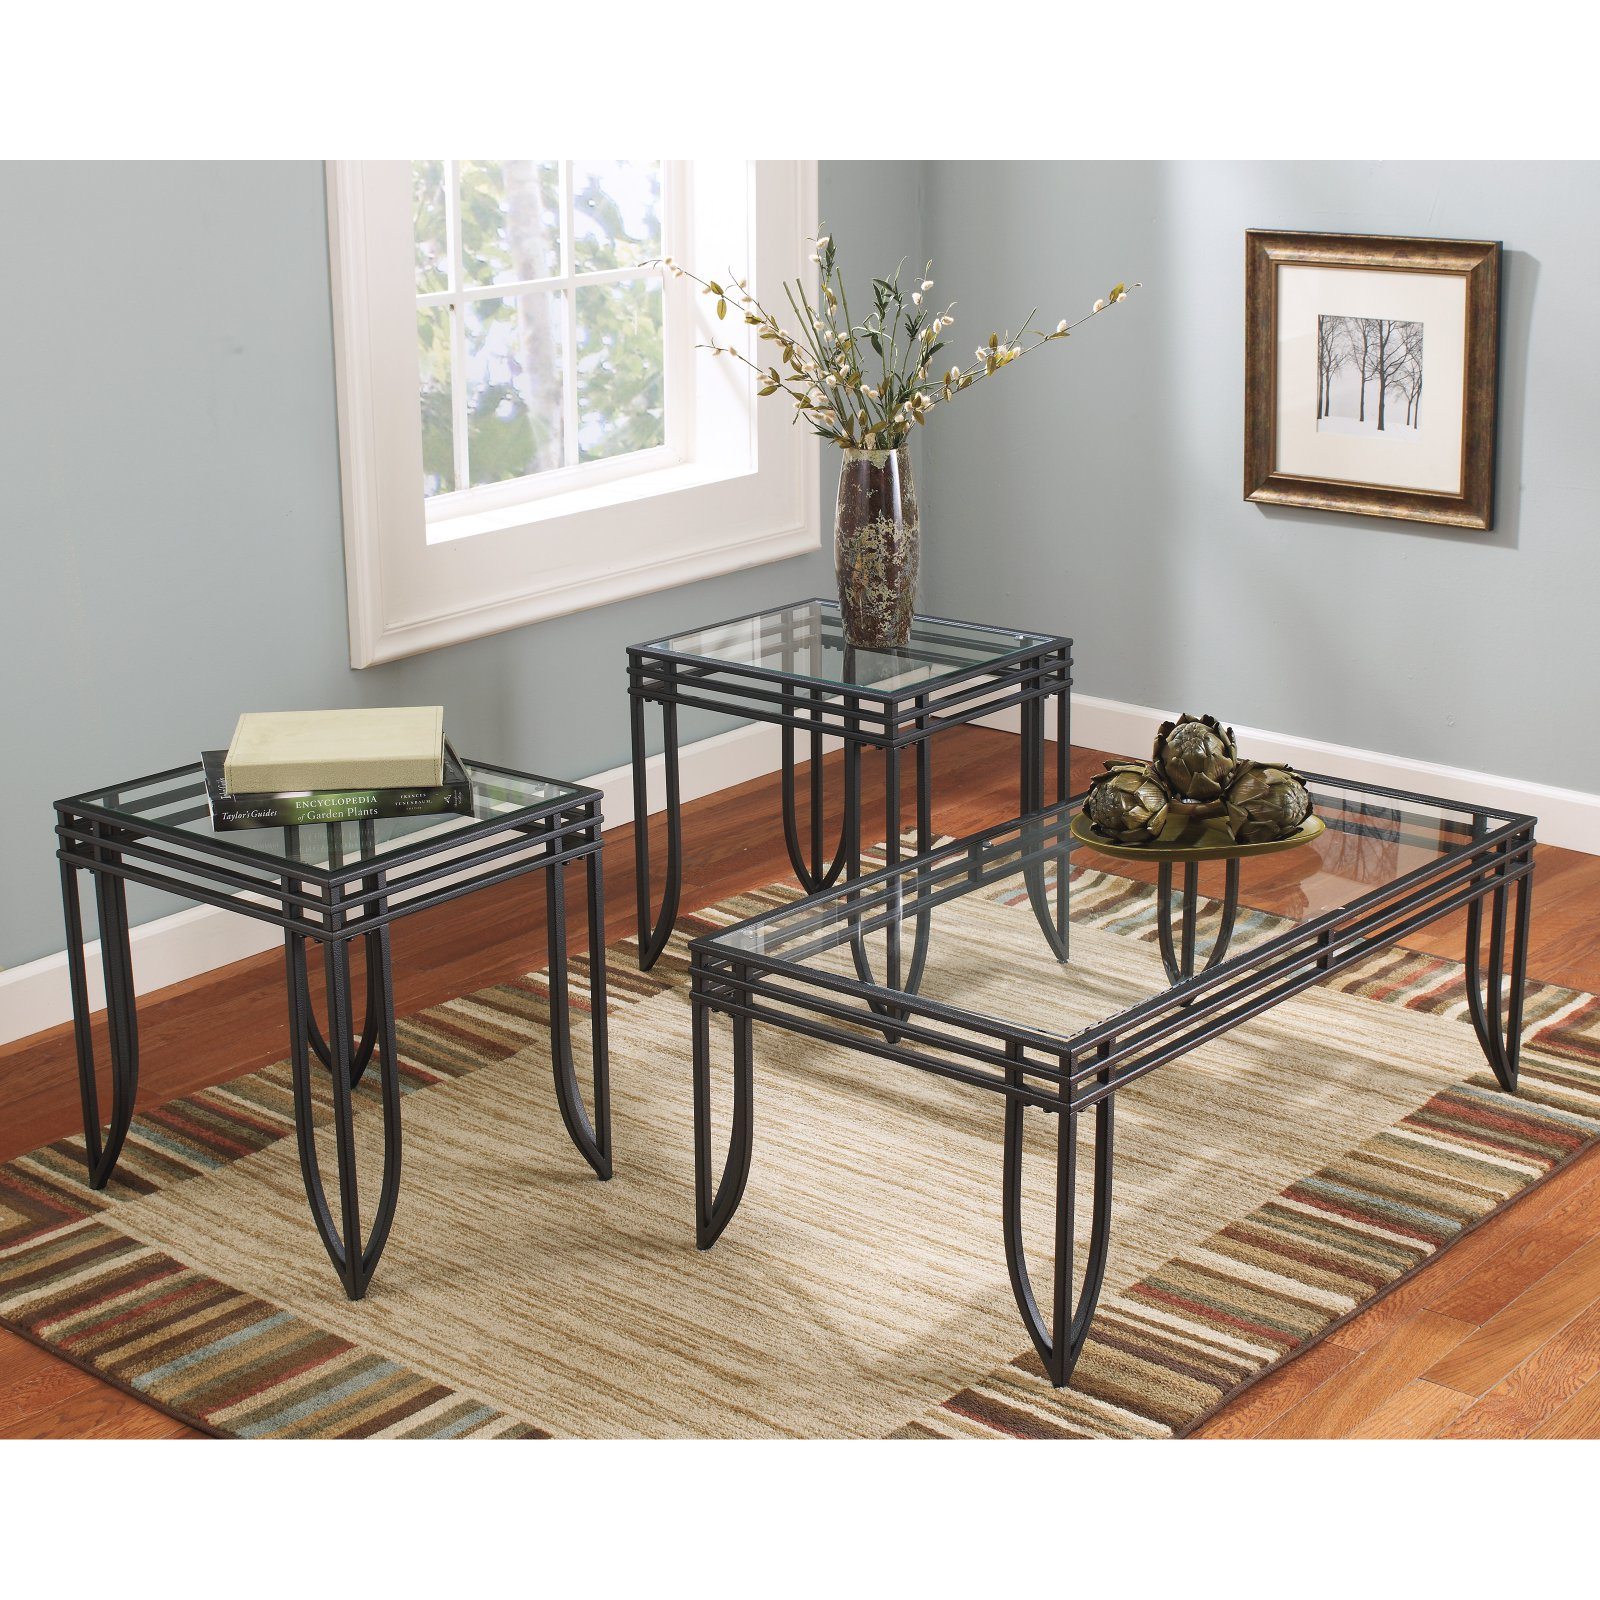 Living Room Sets - Walmart.com